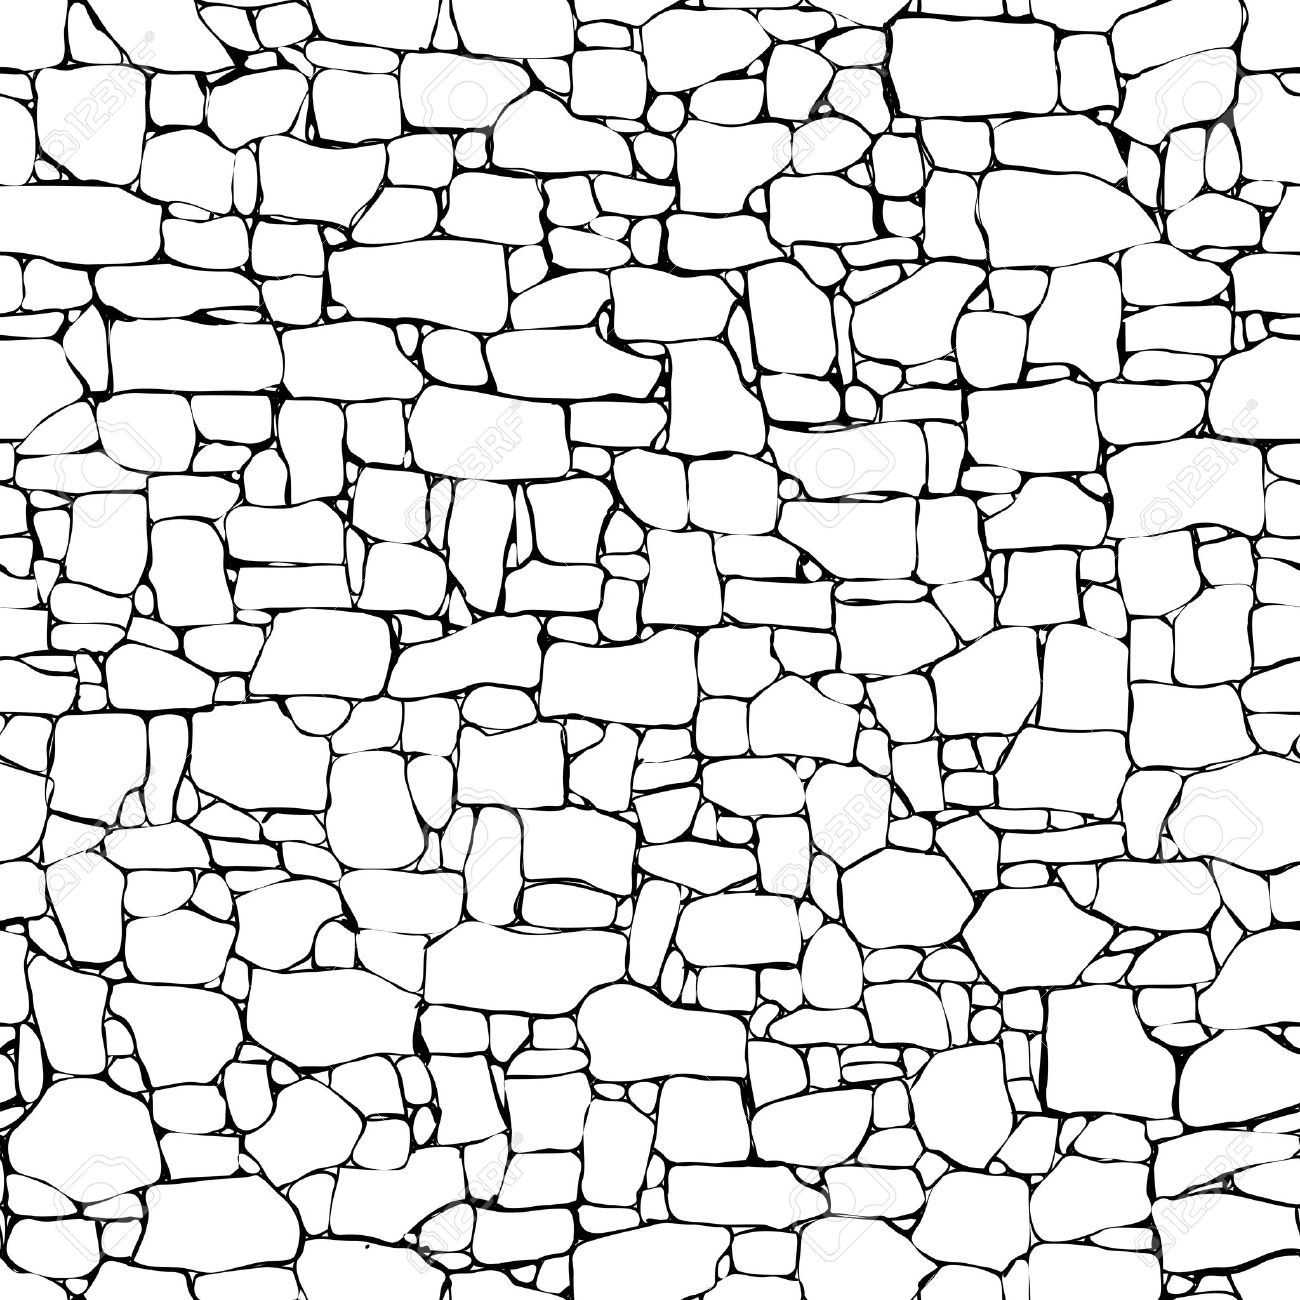 Stone Wall Clipart Black And White.